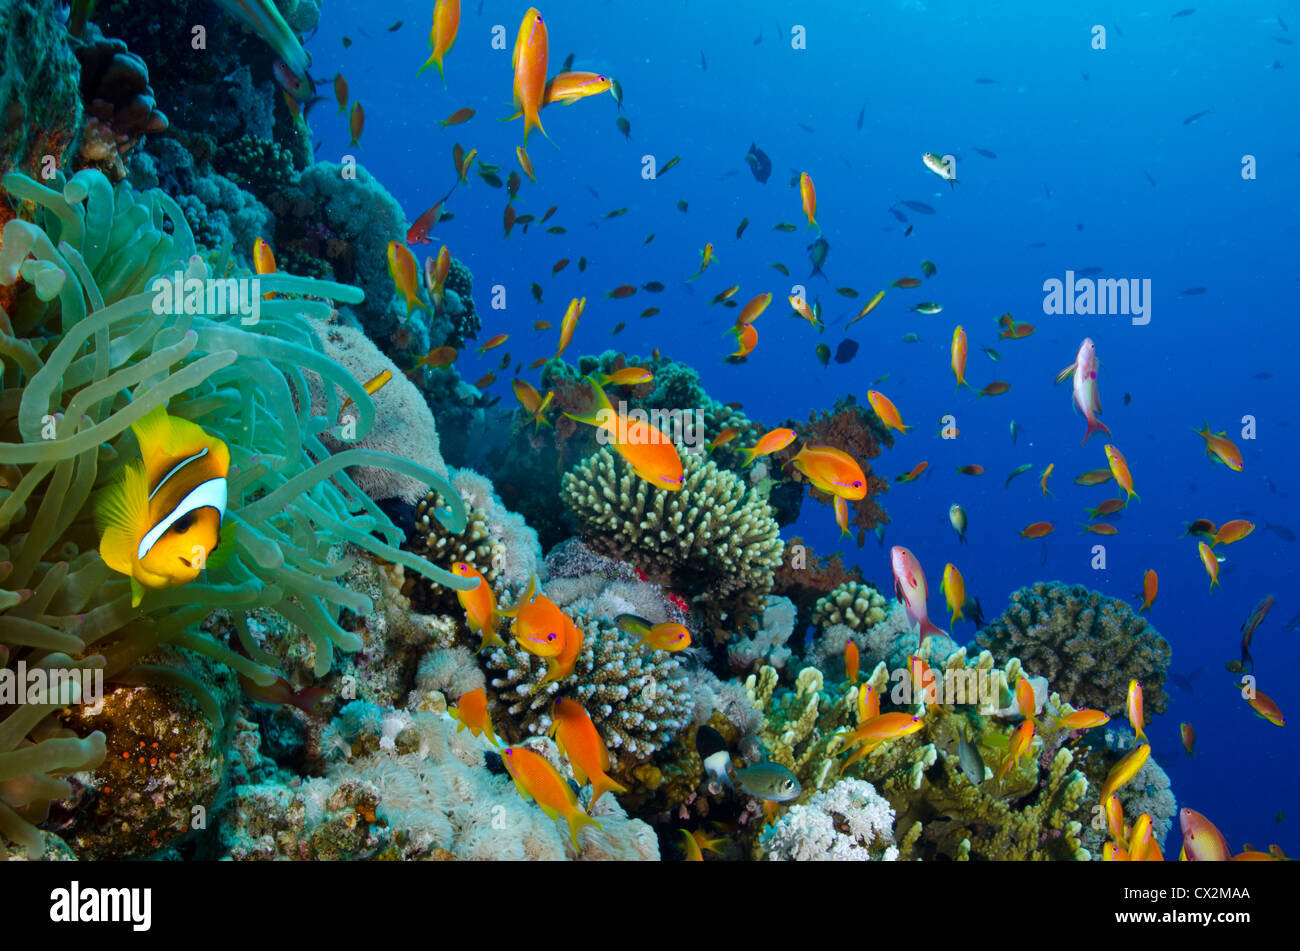 coral reef, Red Sea, Egypt, underwater, tropical reef, blue water, scuba, diving, ocean, sea, fish, sea life, clear - Stock Image